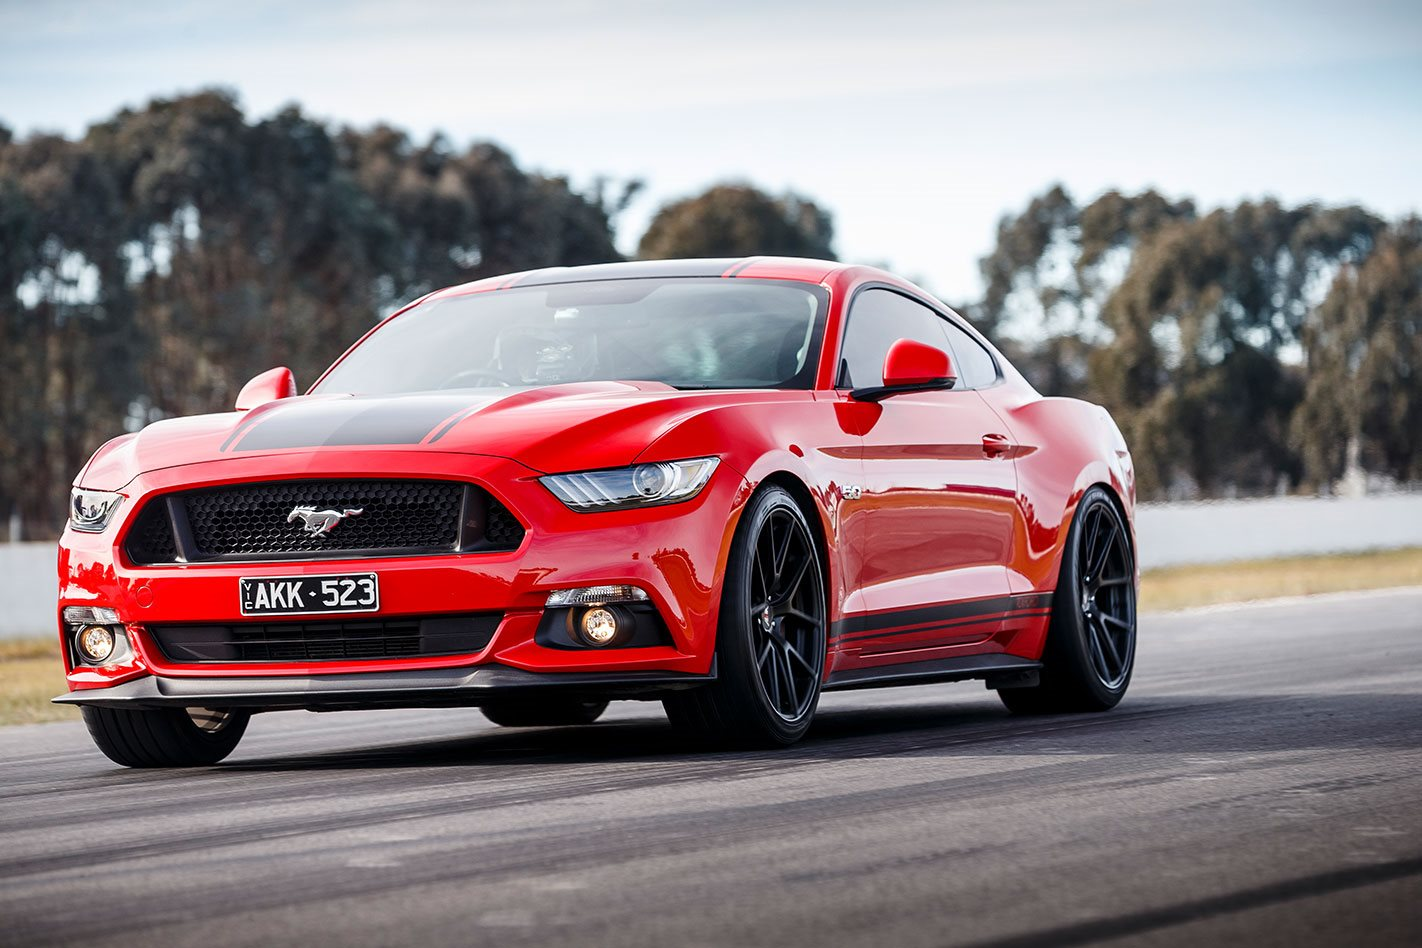 To be honest even though the tickford was fast around the track it wasnt as nice to drive quickly thats simply a function of less body control and that